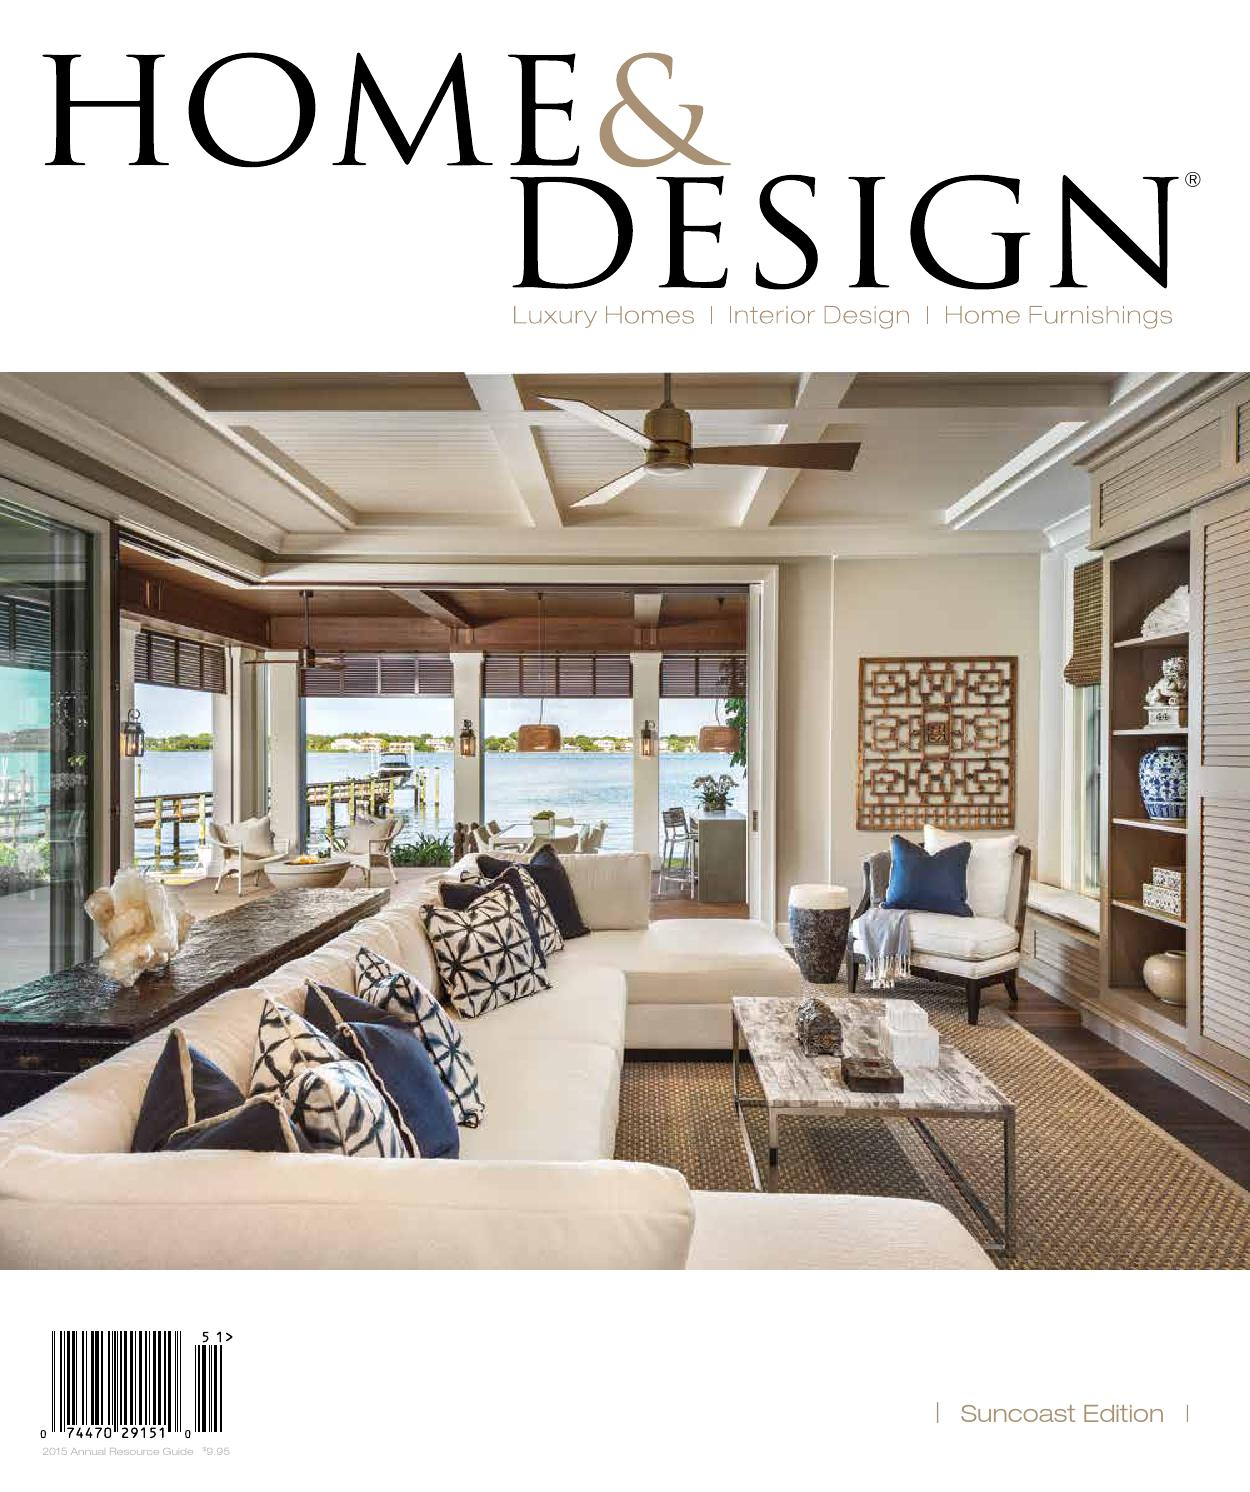 Home design magazine annual resource guide 2015 Home decor magazines